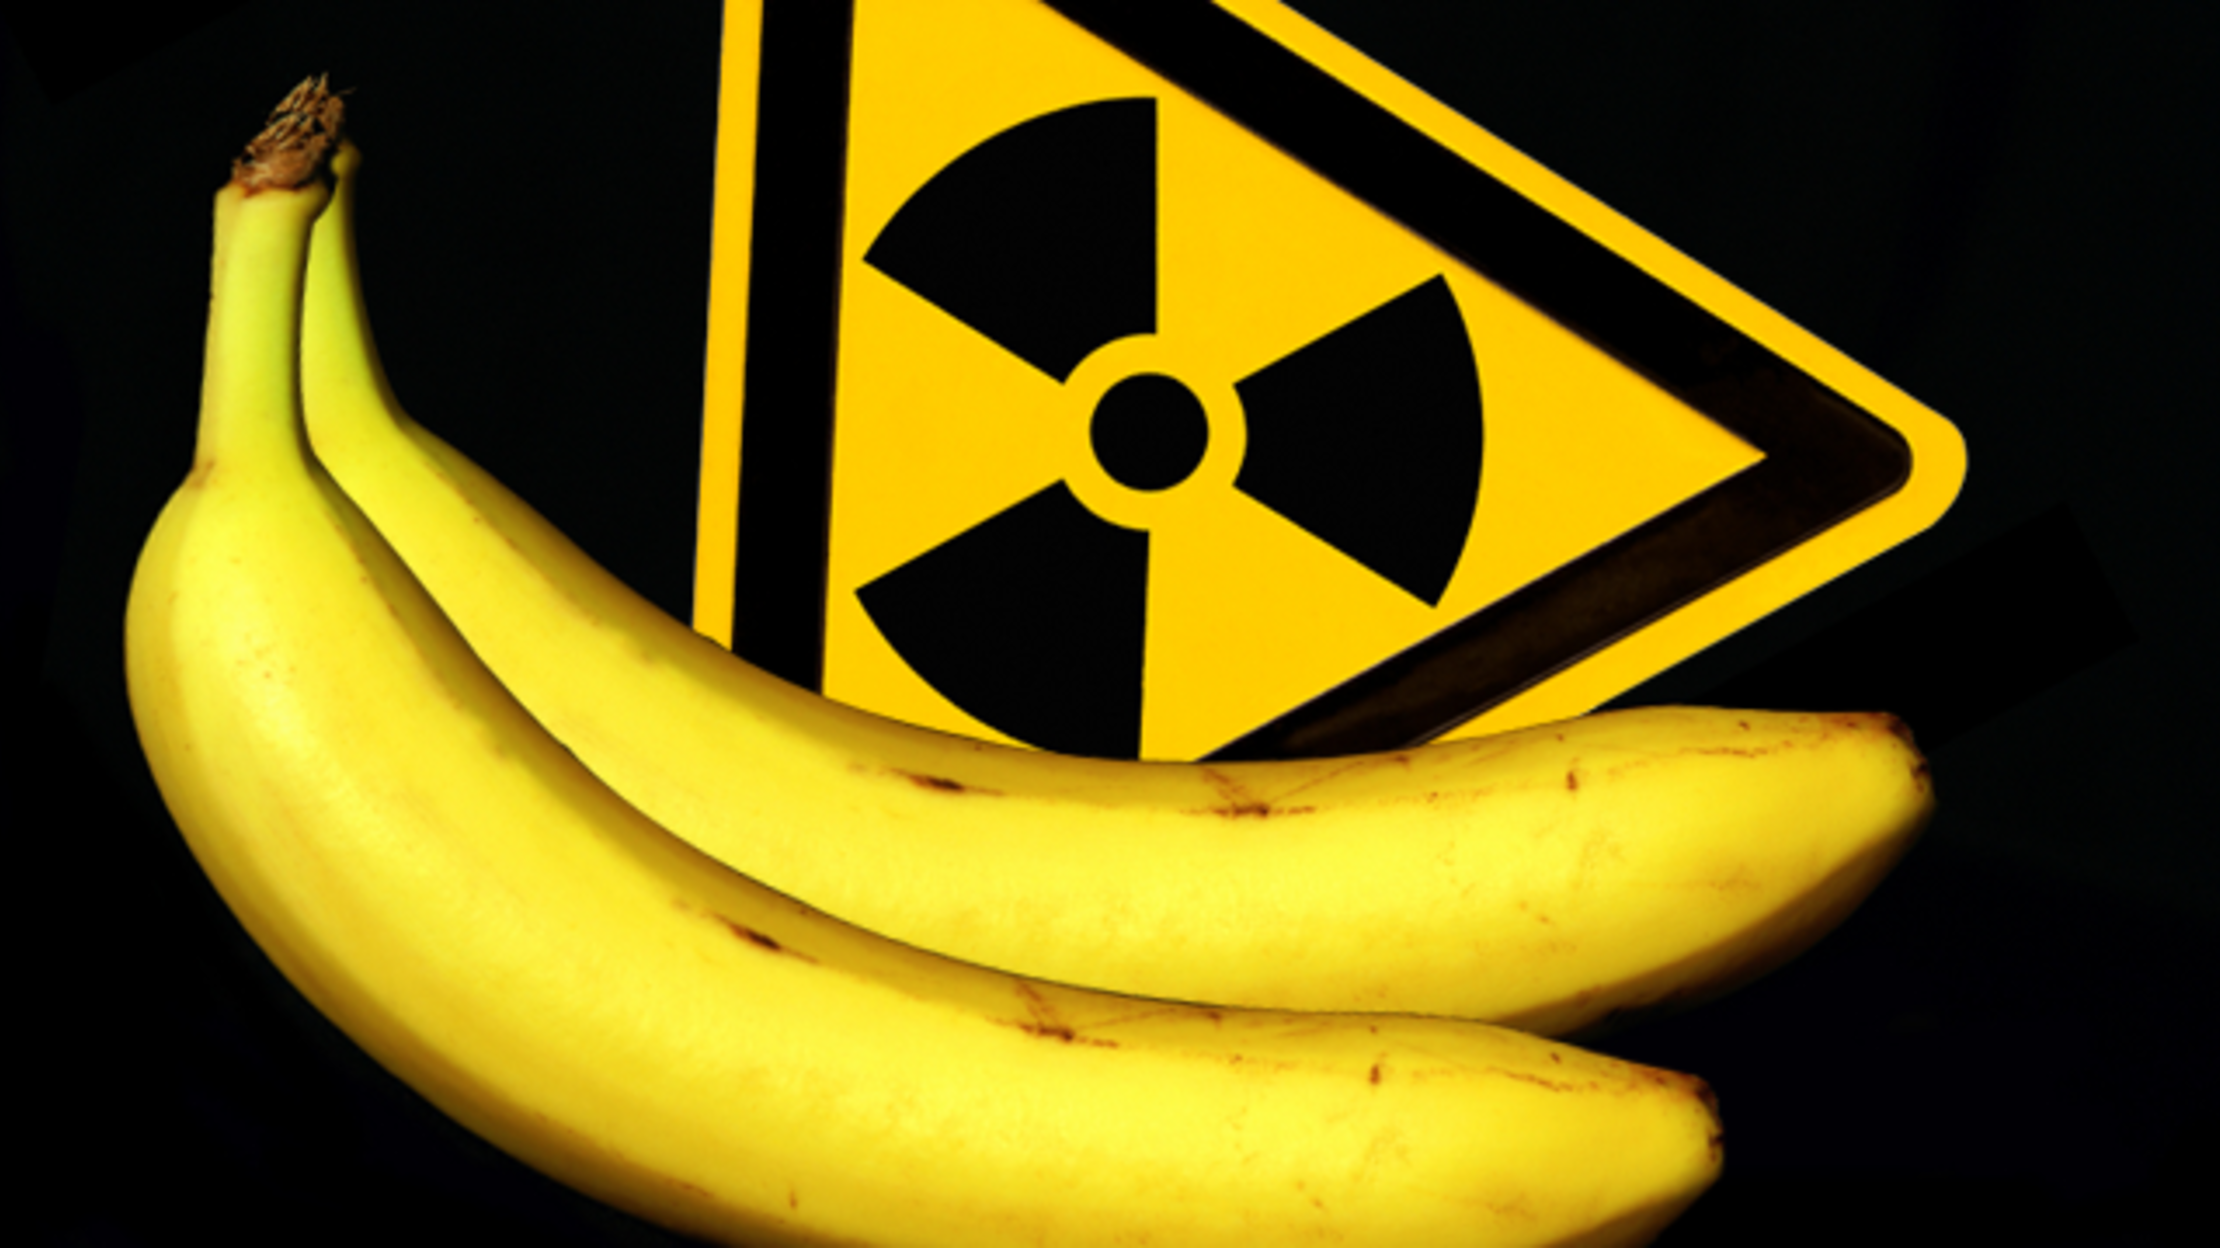 The 7 Most Radioactive Items in Your Home | Mental Floss